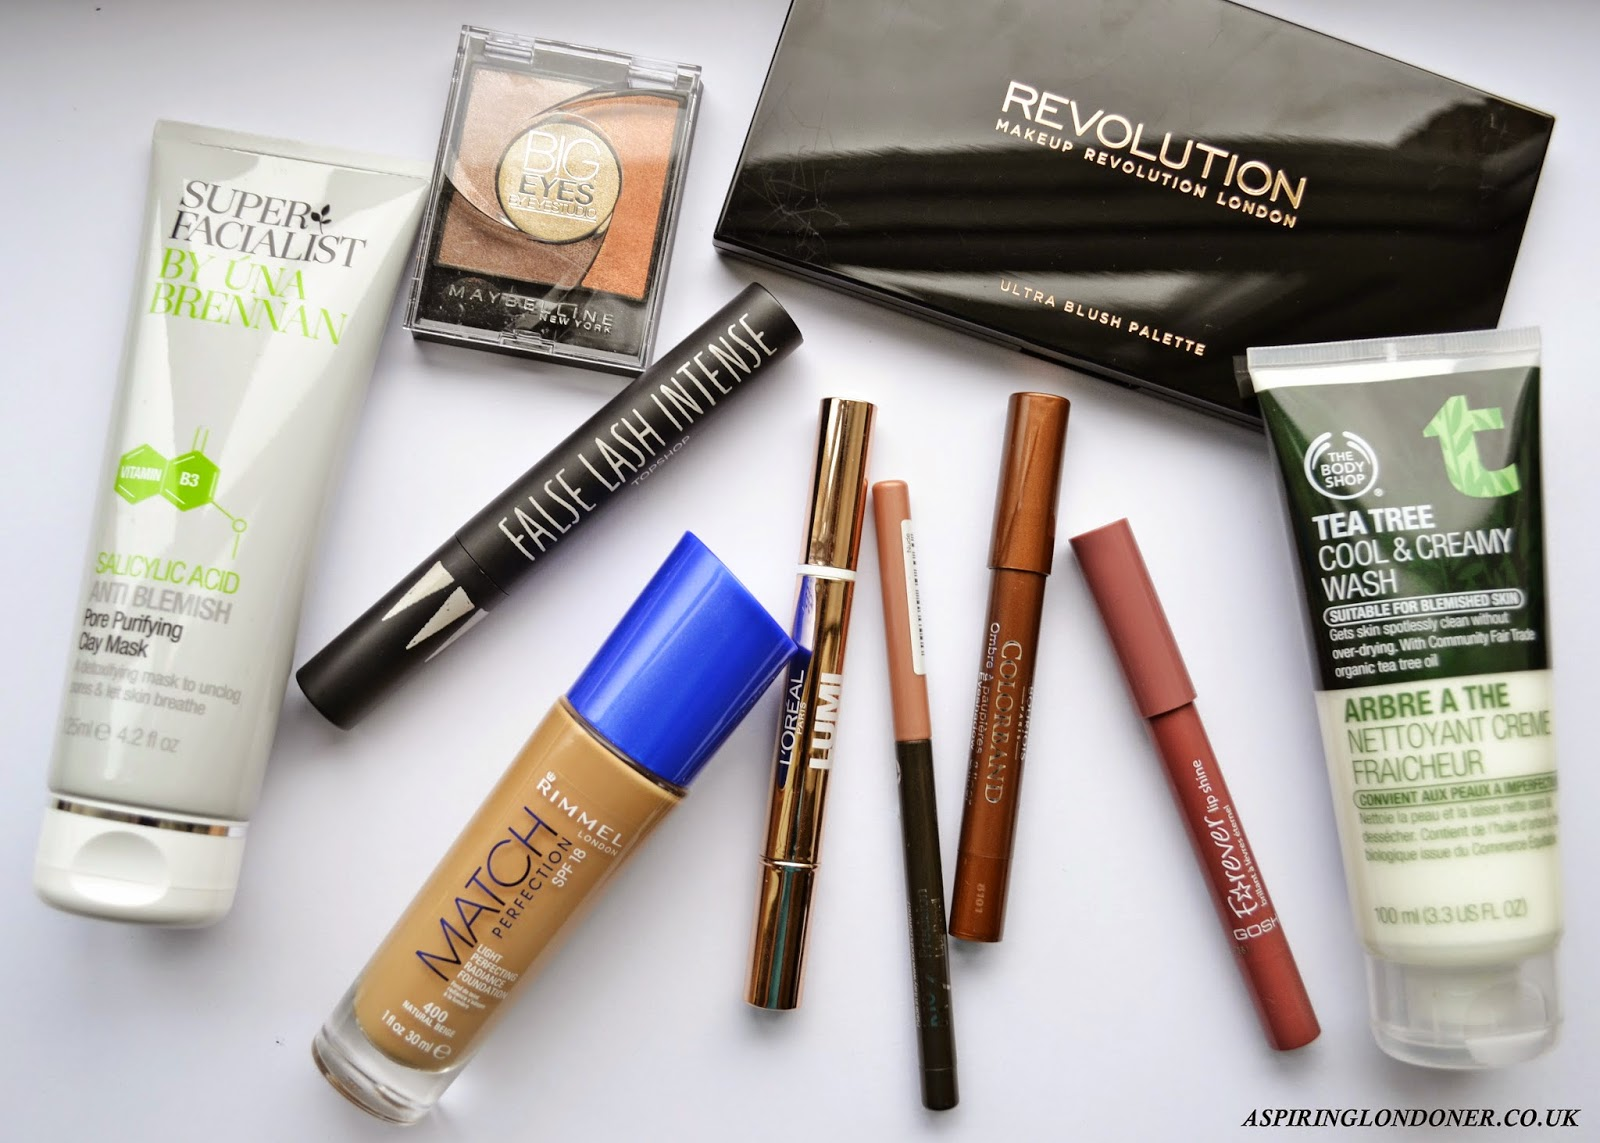 10 under £10 Drugstore Makeup Skincare Review - Aspiring Londoner